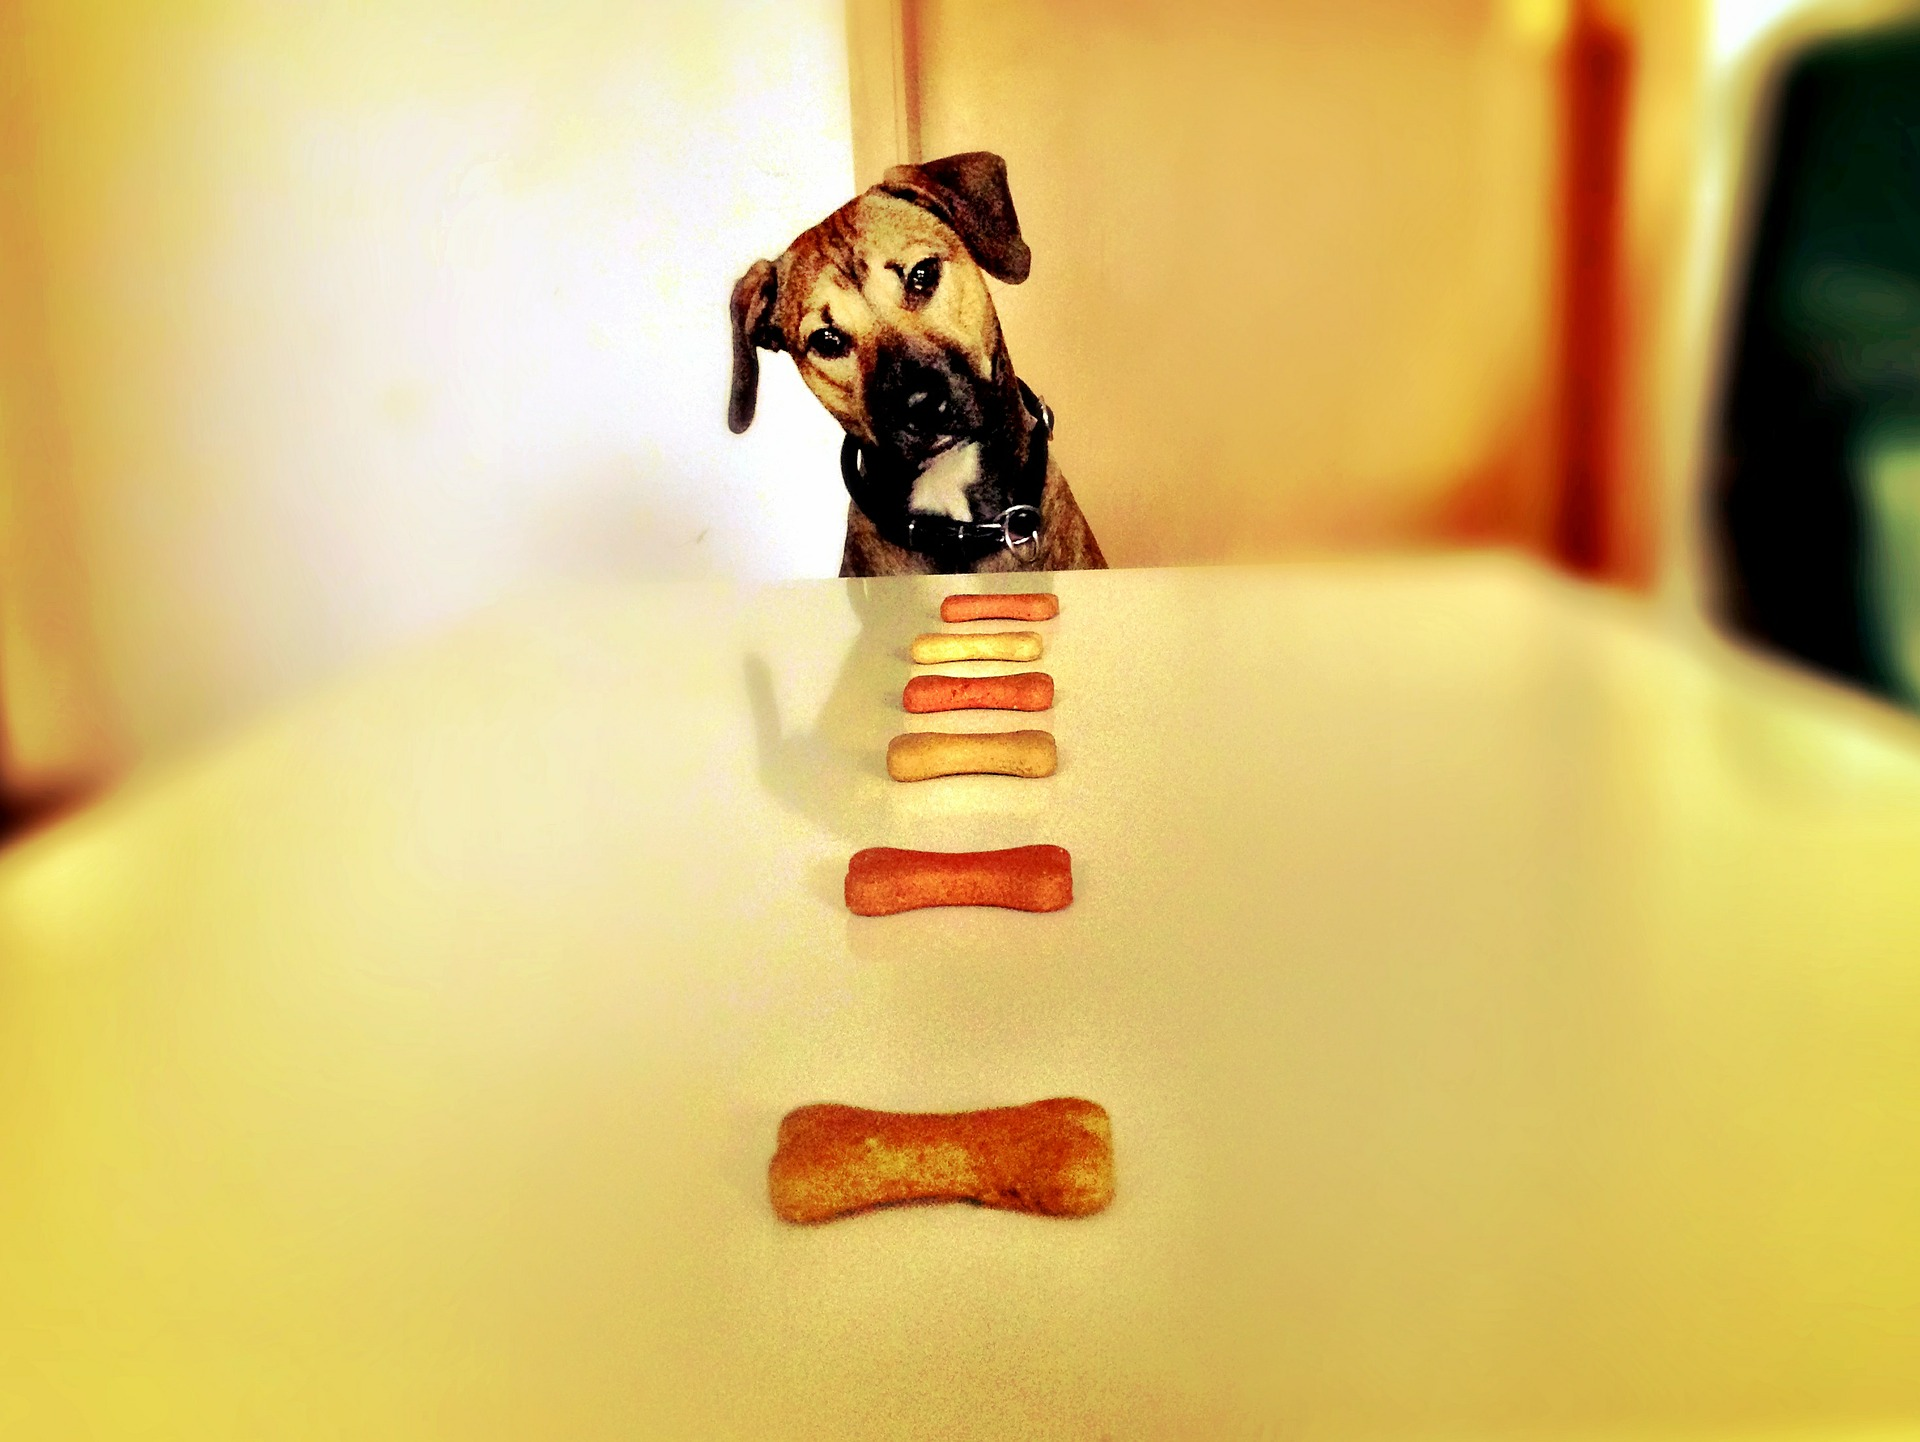 Dog looking at dog training treats on table